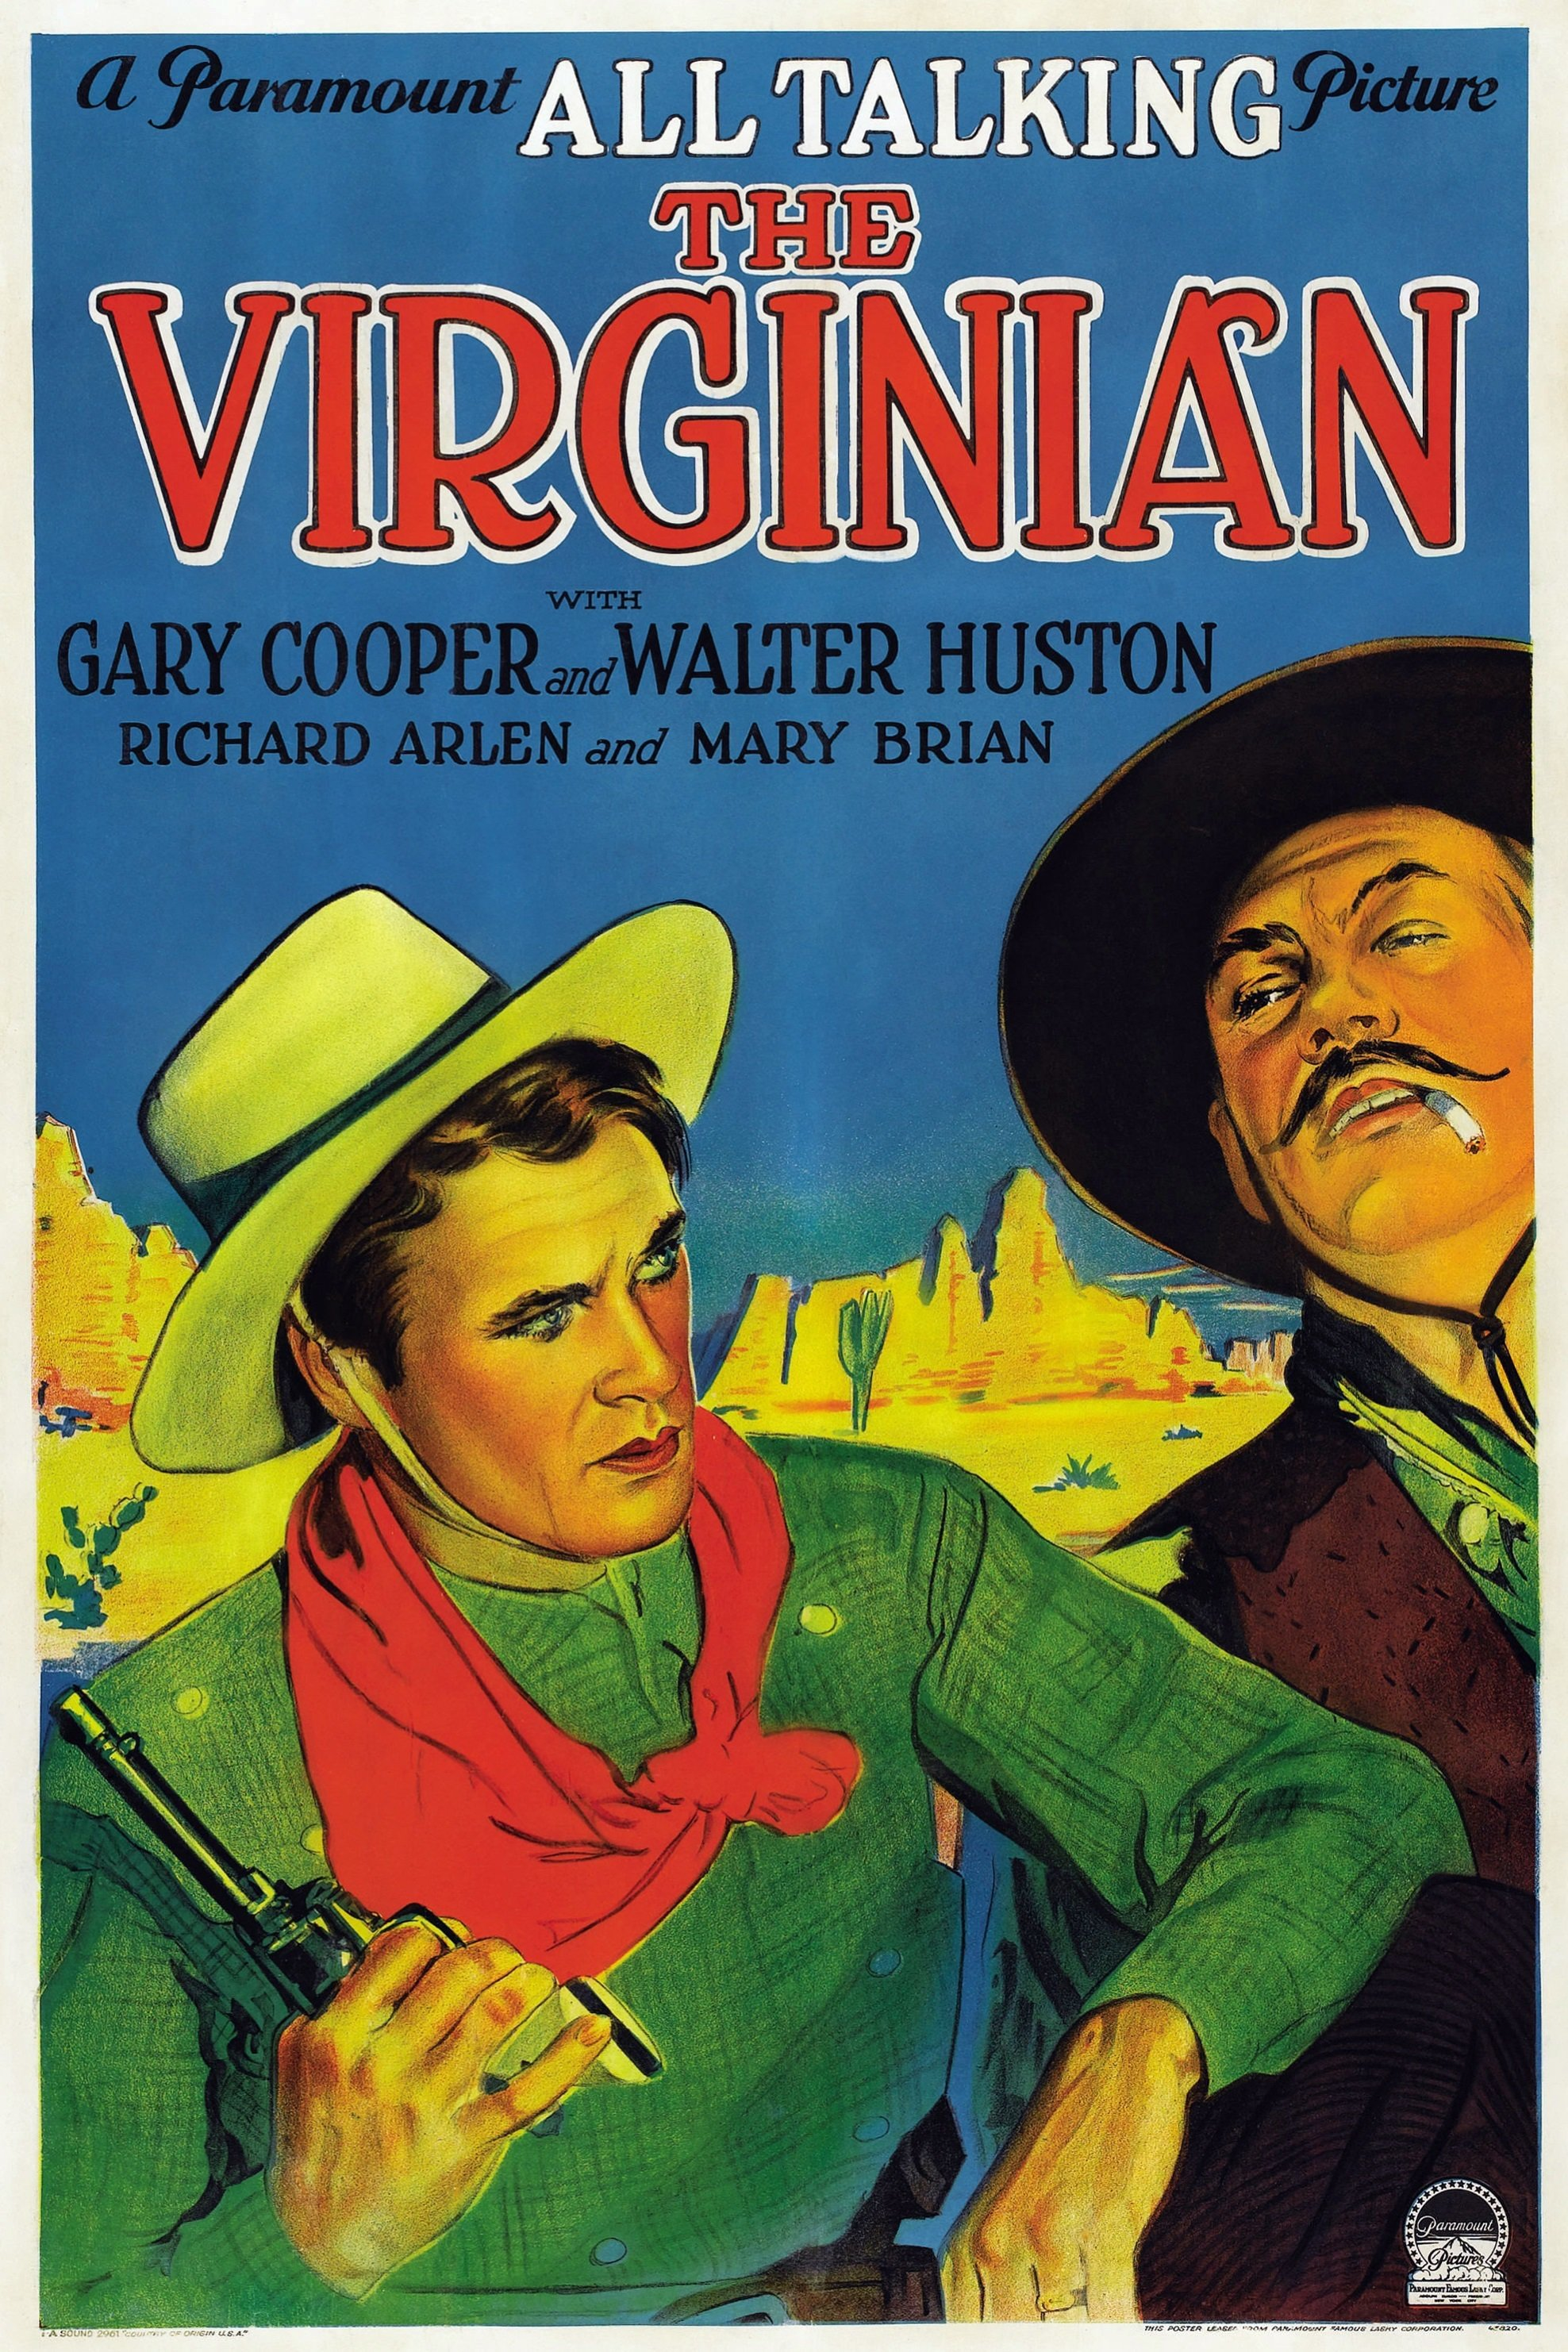 - A good-natured cowboy who is romancing the new schoolmarm has a crisis of conscience when he discovers his best friend is engaged in cattle rustling.The Virginian (1929) Directed by Victor Fleming. 91mins.Gary Cooper - The VirginianWalter Huston - TrampasAlso starring Mary Brian, Richard Arlen, Helen Ware and Eugene Pallette.Based on the novel by Owen Wister, first published in 1902.Gary Cooper's first talking picture and first lead role in a western.19291 h 31 min